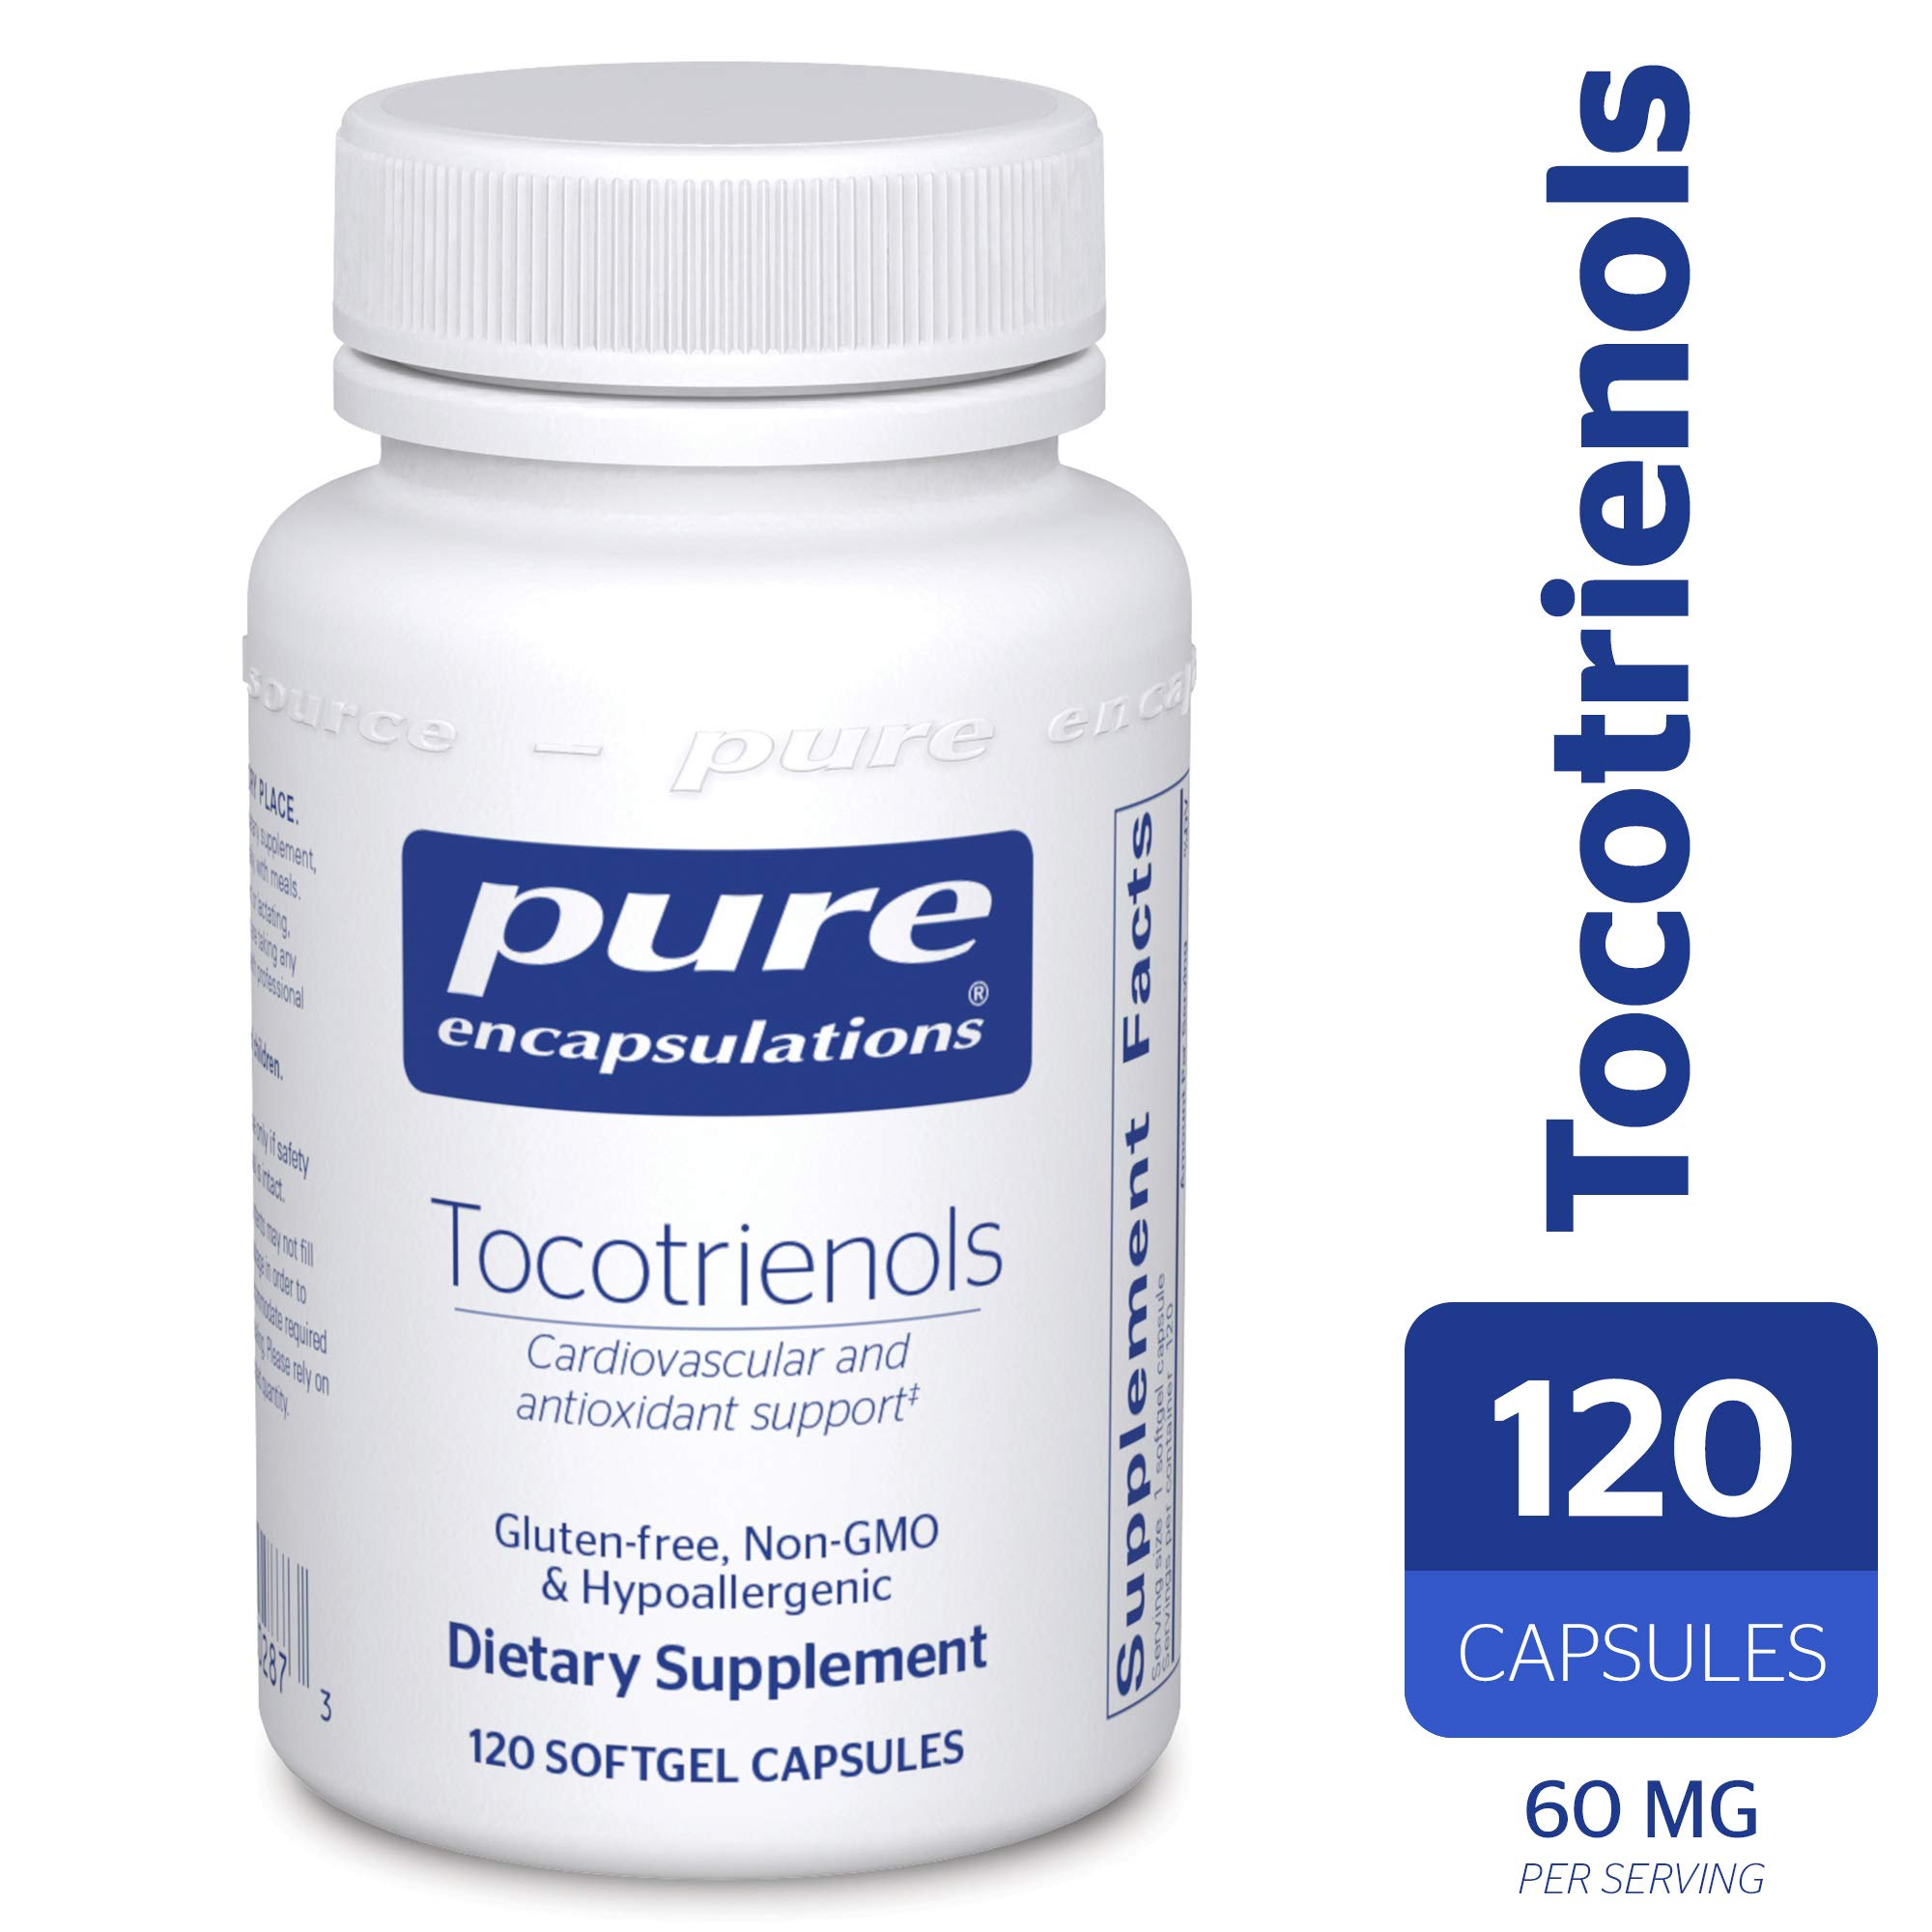 Pure Encapsulations - Tocotrienols - Hypoallergenic Supplement with Mixed Tocopherols for Cardiovascular and Antioxidant Support* - 120 Softgel Capsules